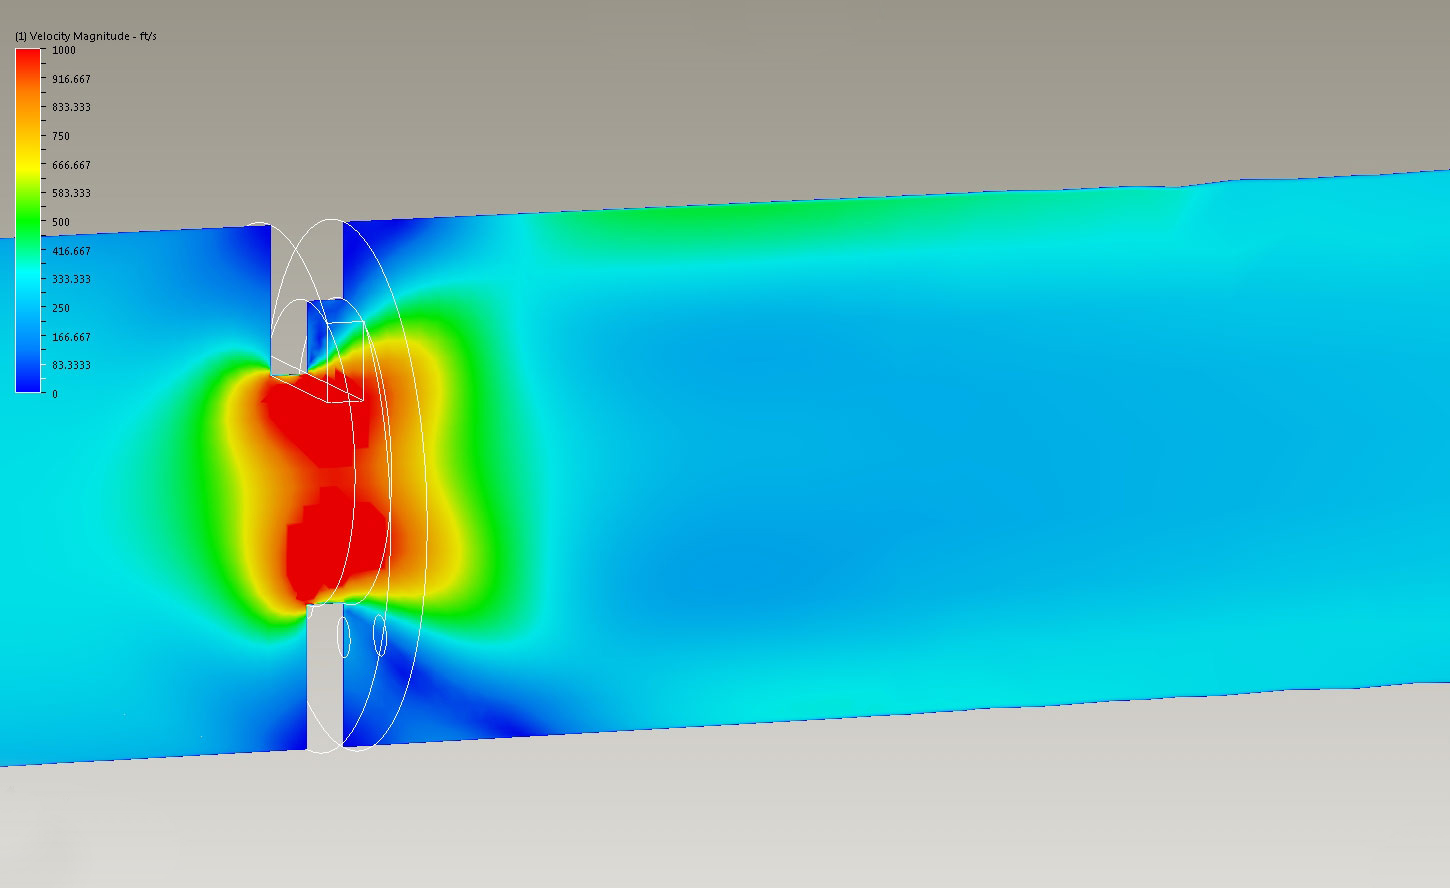 CFD simulation for flow conditions through the large centered orifice.